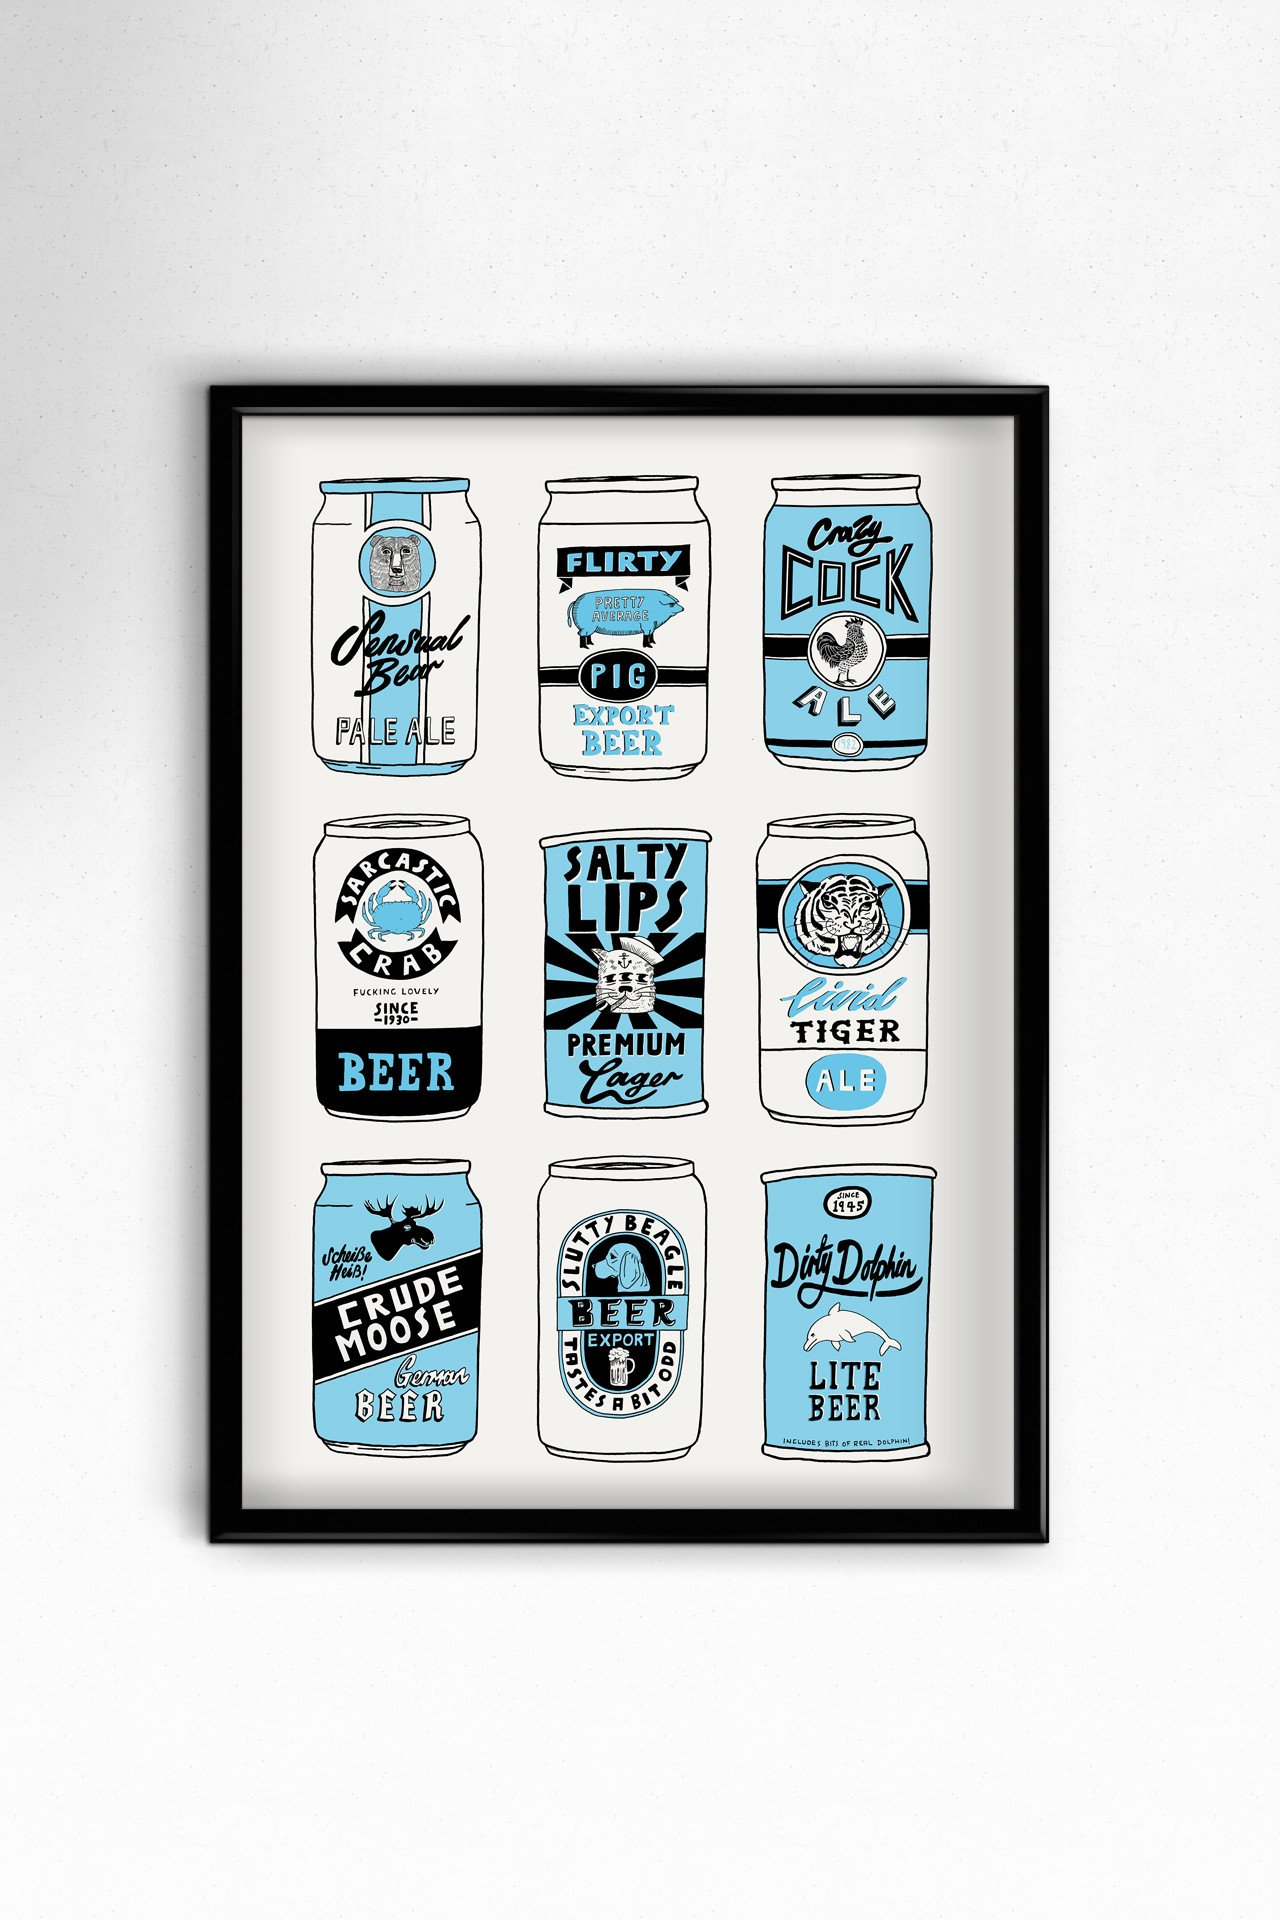 Beer Cans A3 Print - ►Top Sellers, Framed Prints (approx A3 Size), Giclée,  Gocco & Digital Prints, Food, Drink & Home, For Guys - The Red Door Gallery